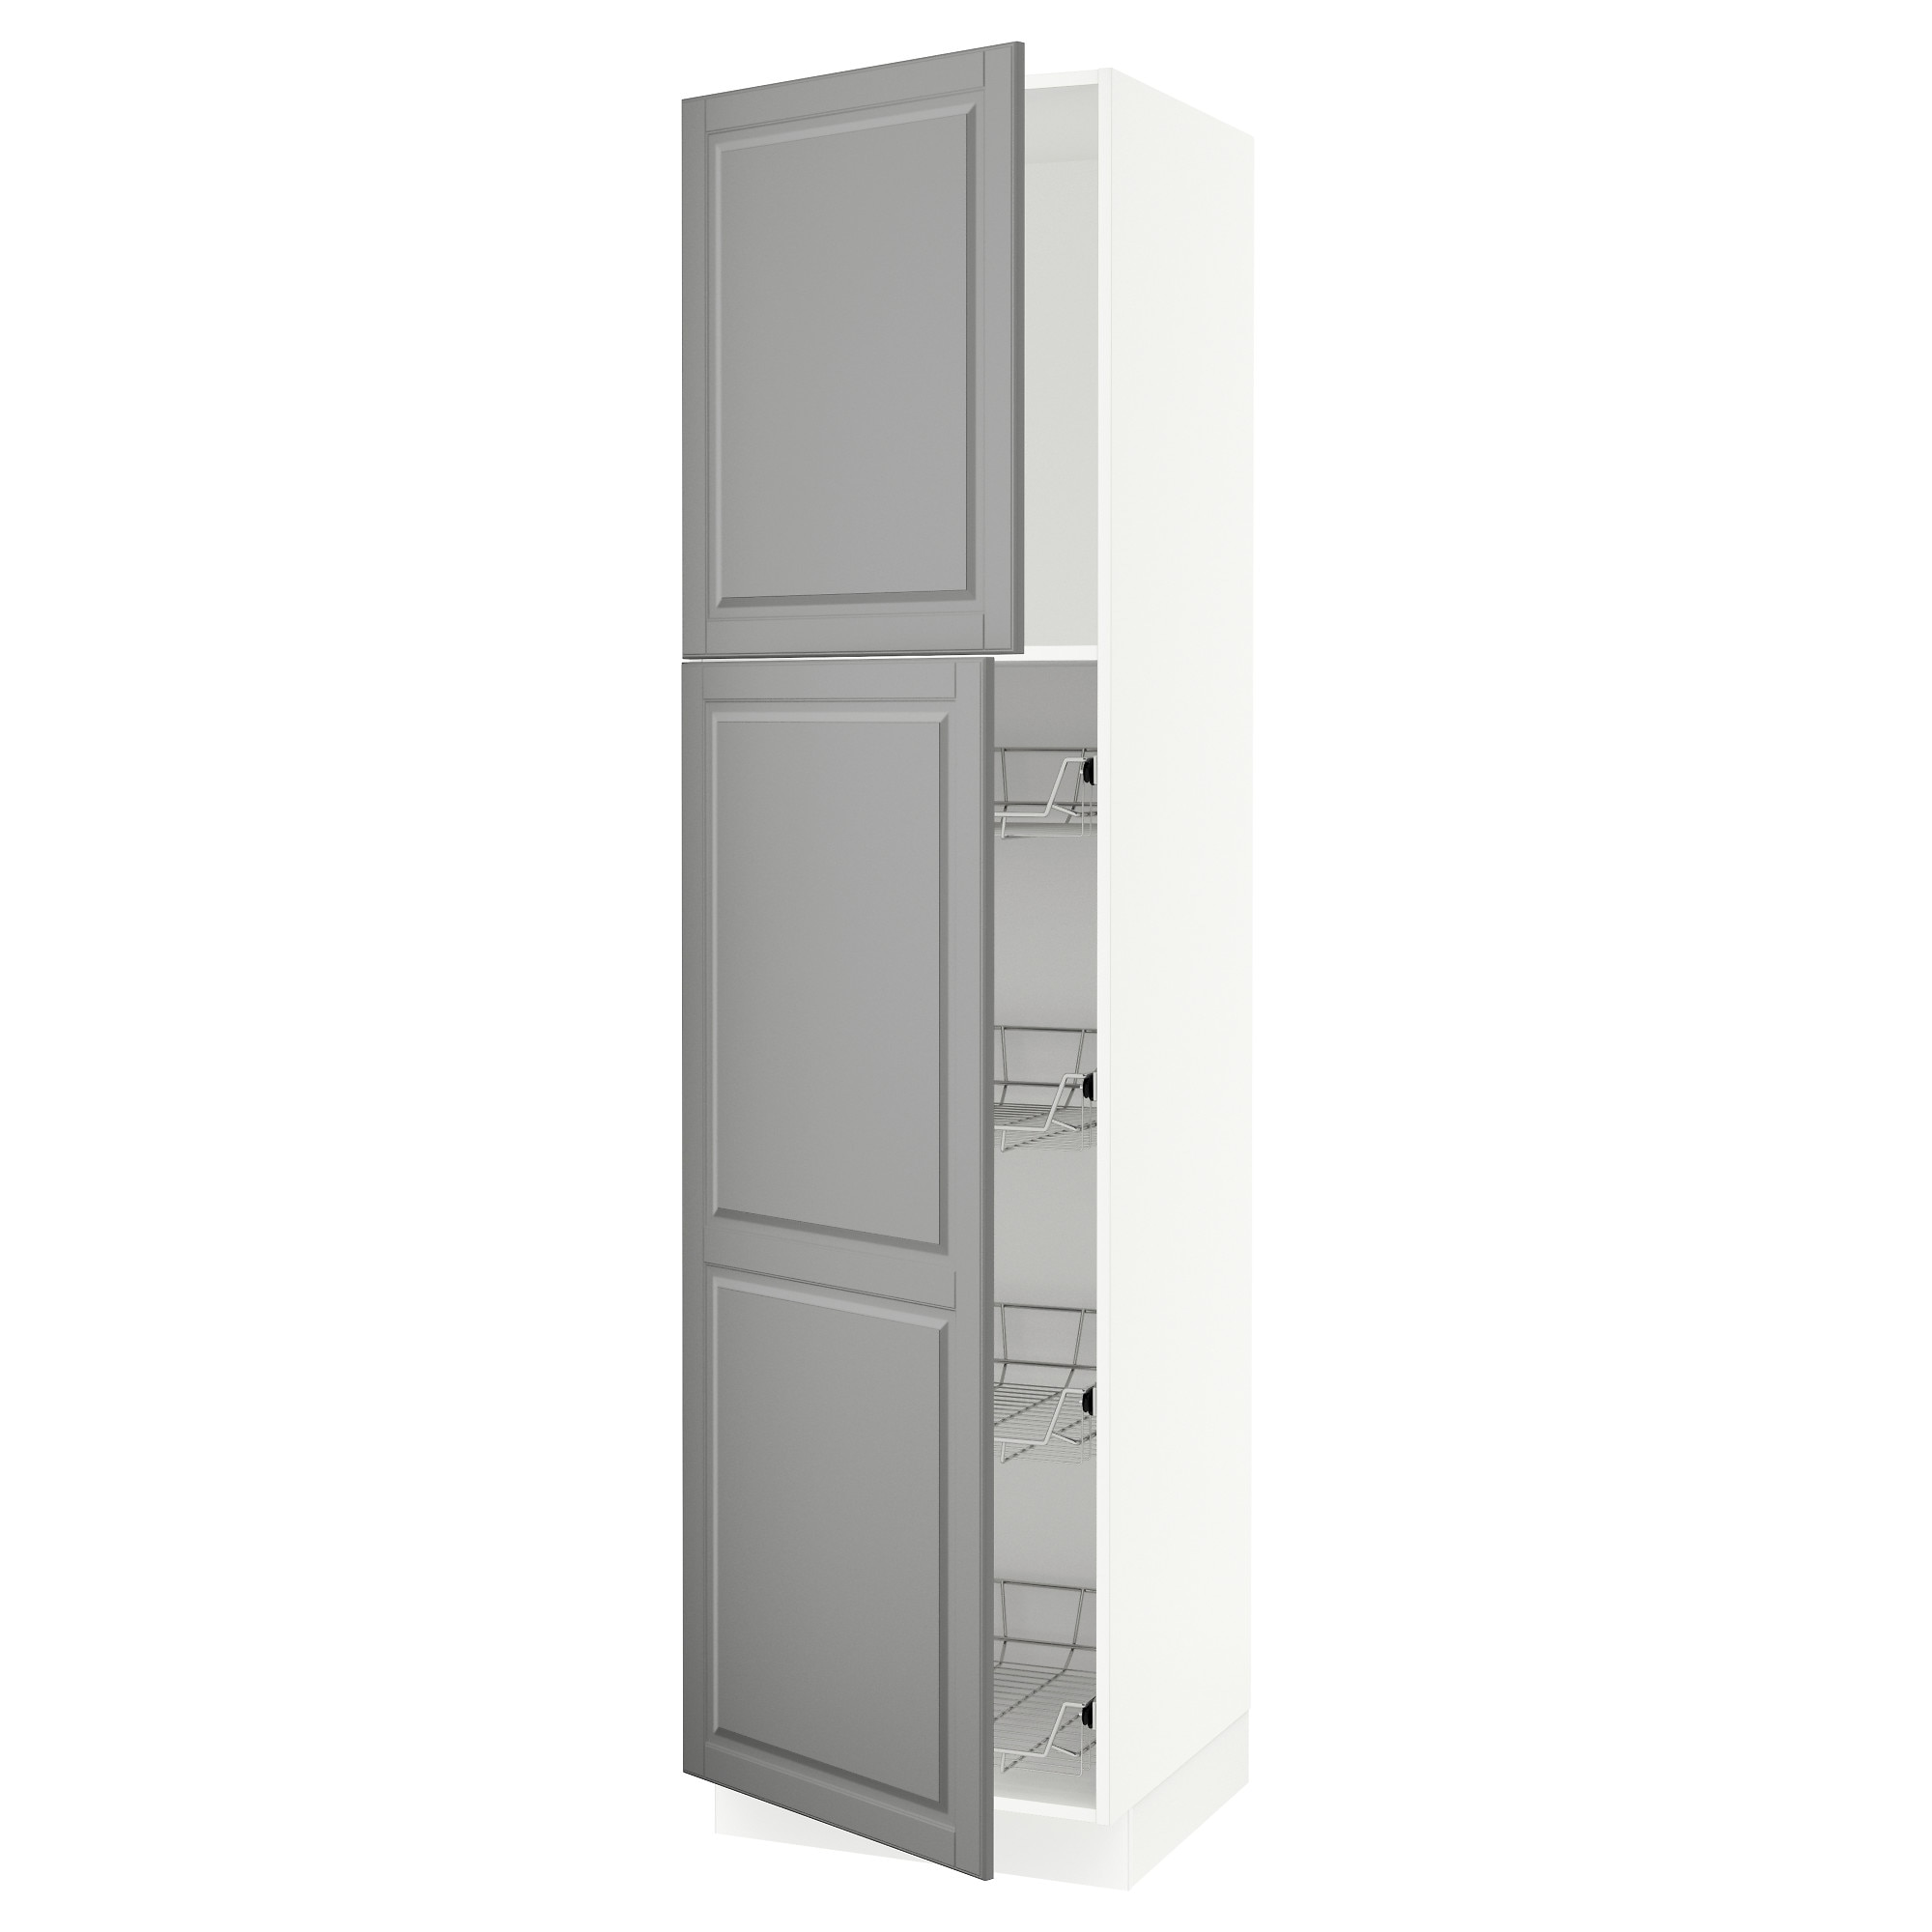 trendy sektion high cabinet wdoor u wire baskets white bodbyn gray width with garde manger ikea. Black Bedroom Furniture Sets. Home Design Ideas